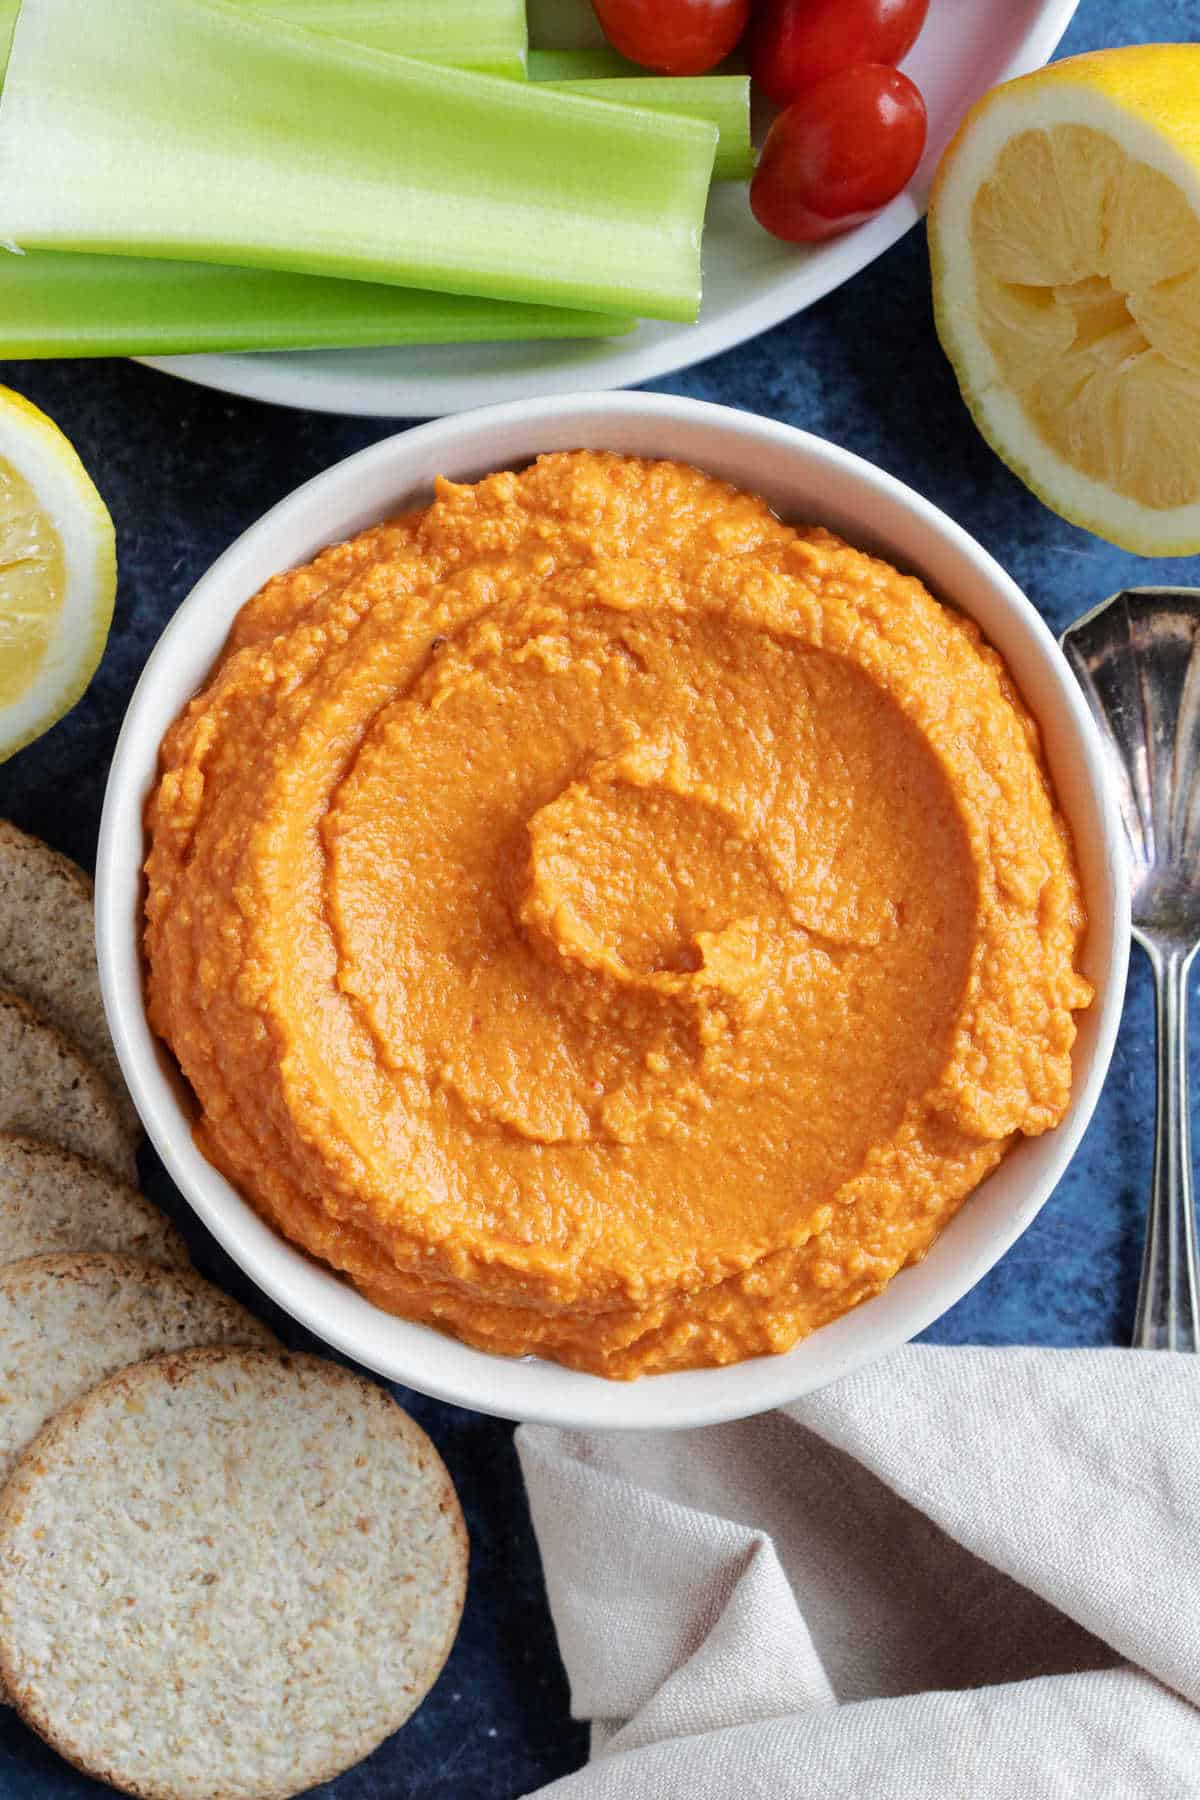 Roasted red pepper hummus in a serving dish with celery sticks.